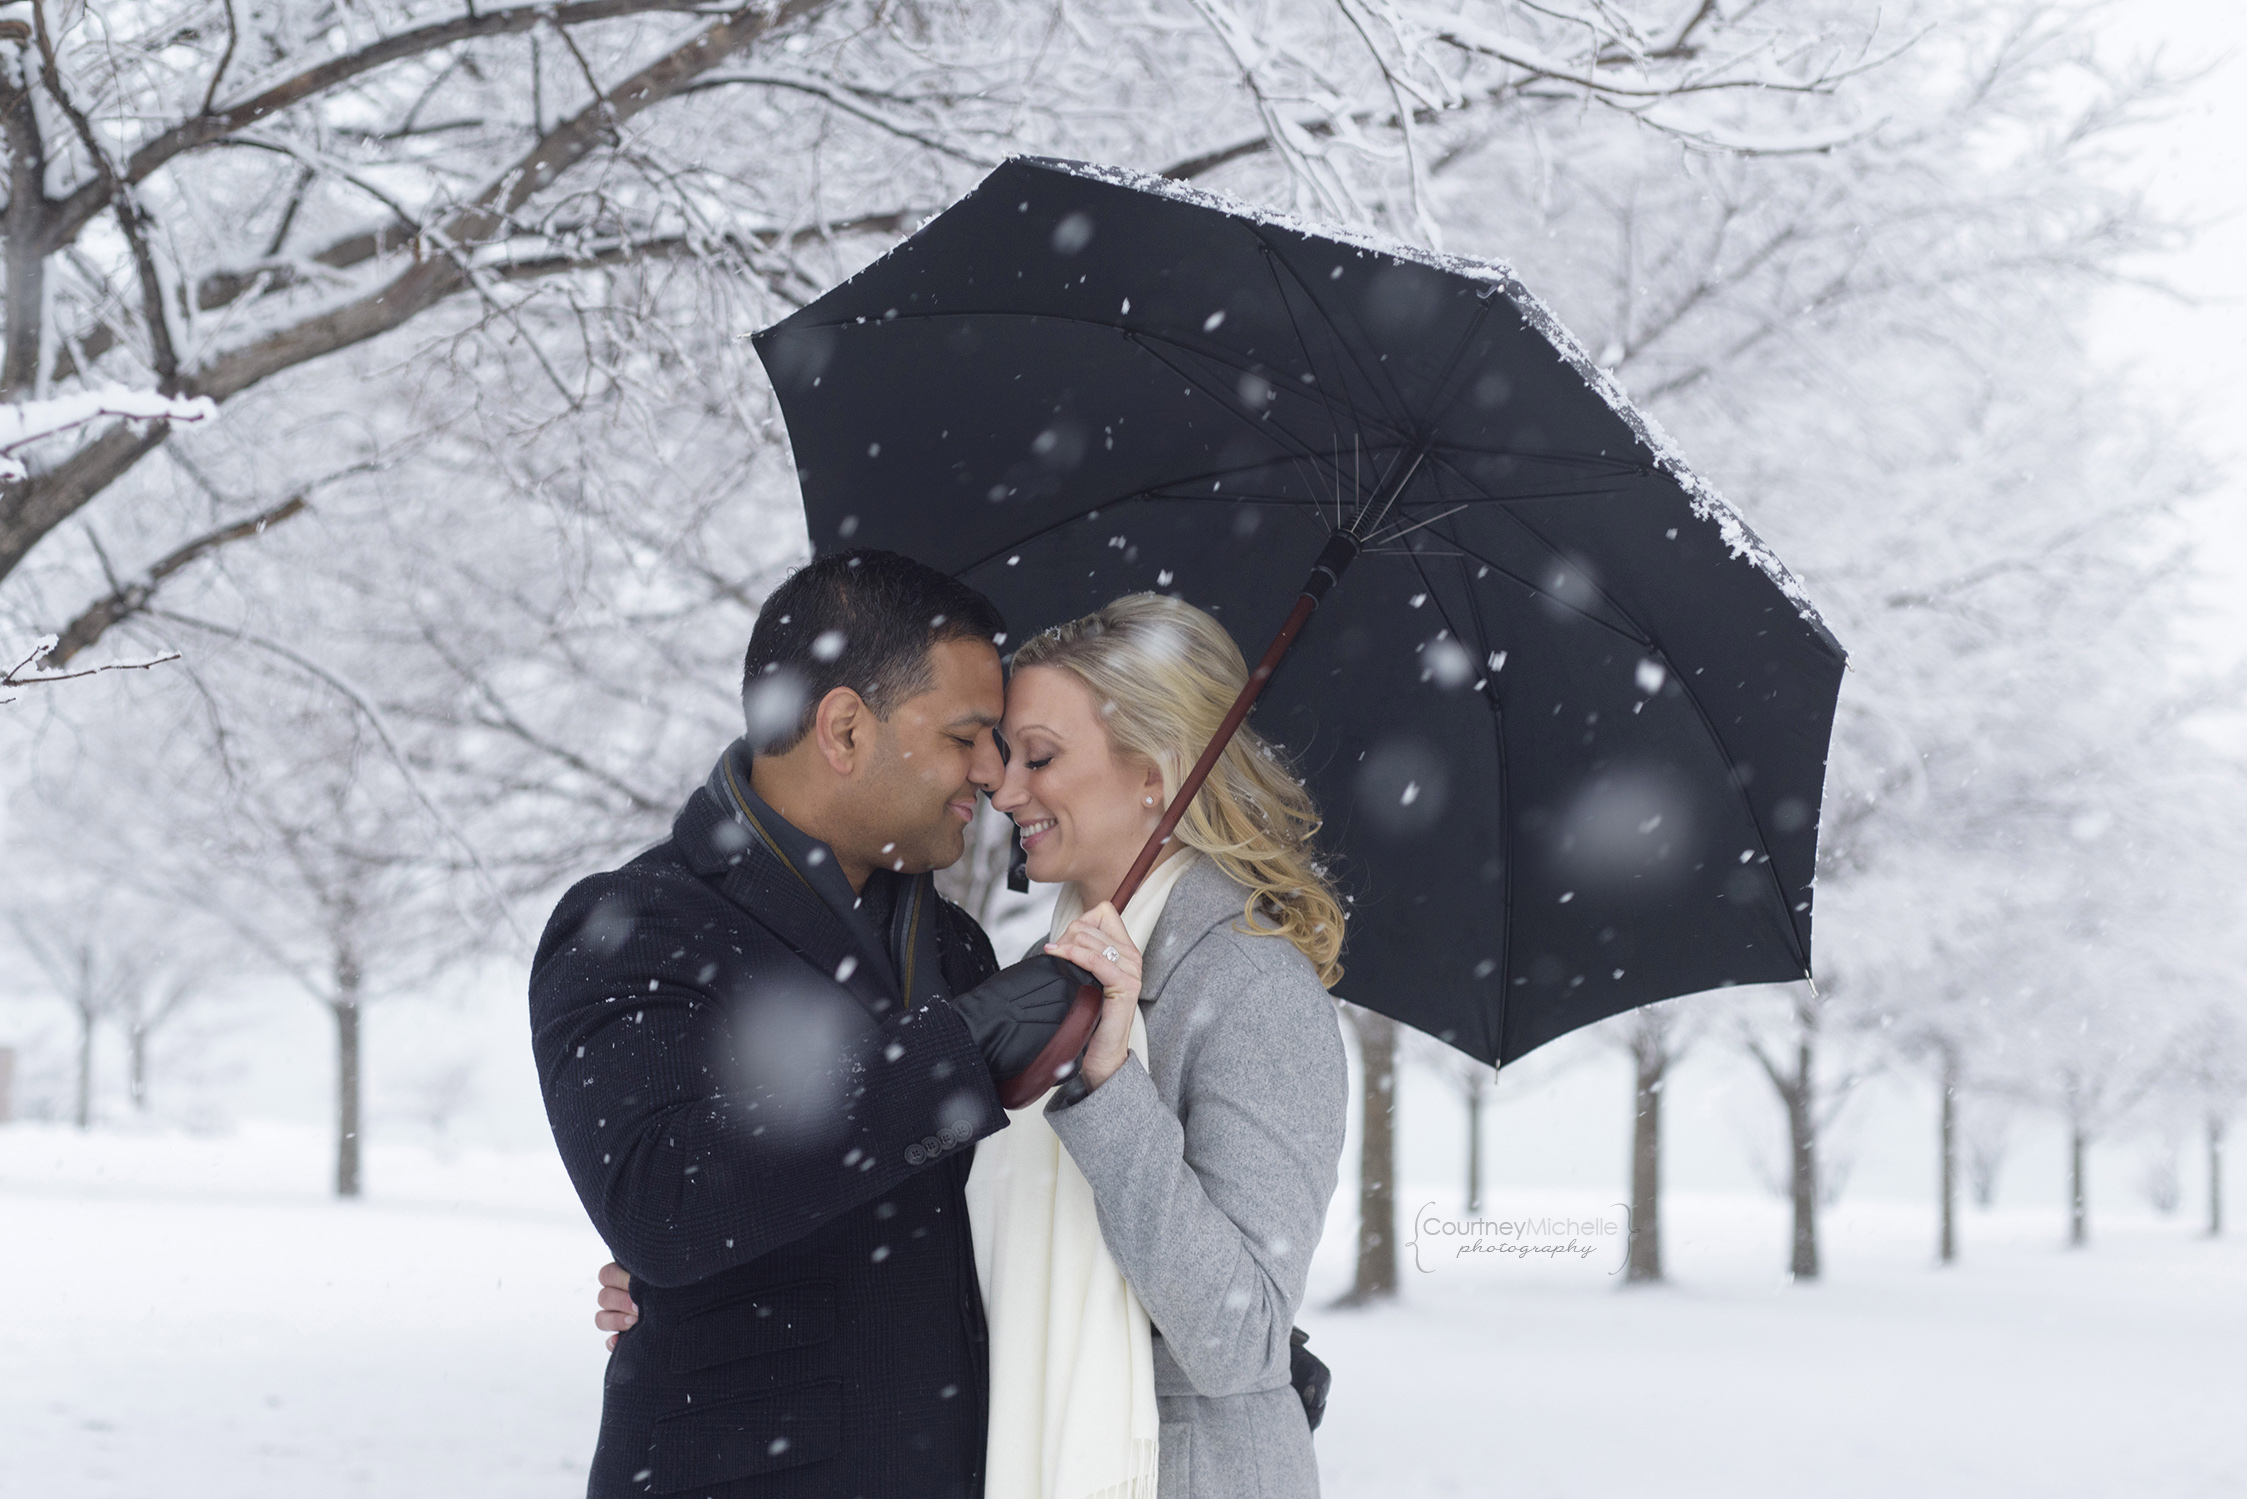 snowy-chicago-engagement-photography-museum-campus-umbrella-courtney-laper©COPYRIGHTCMP-3420.jpg